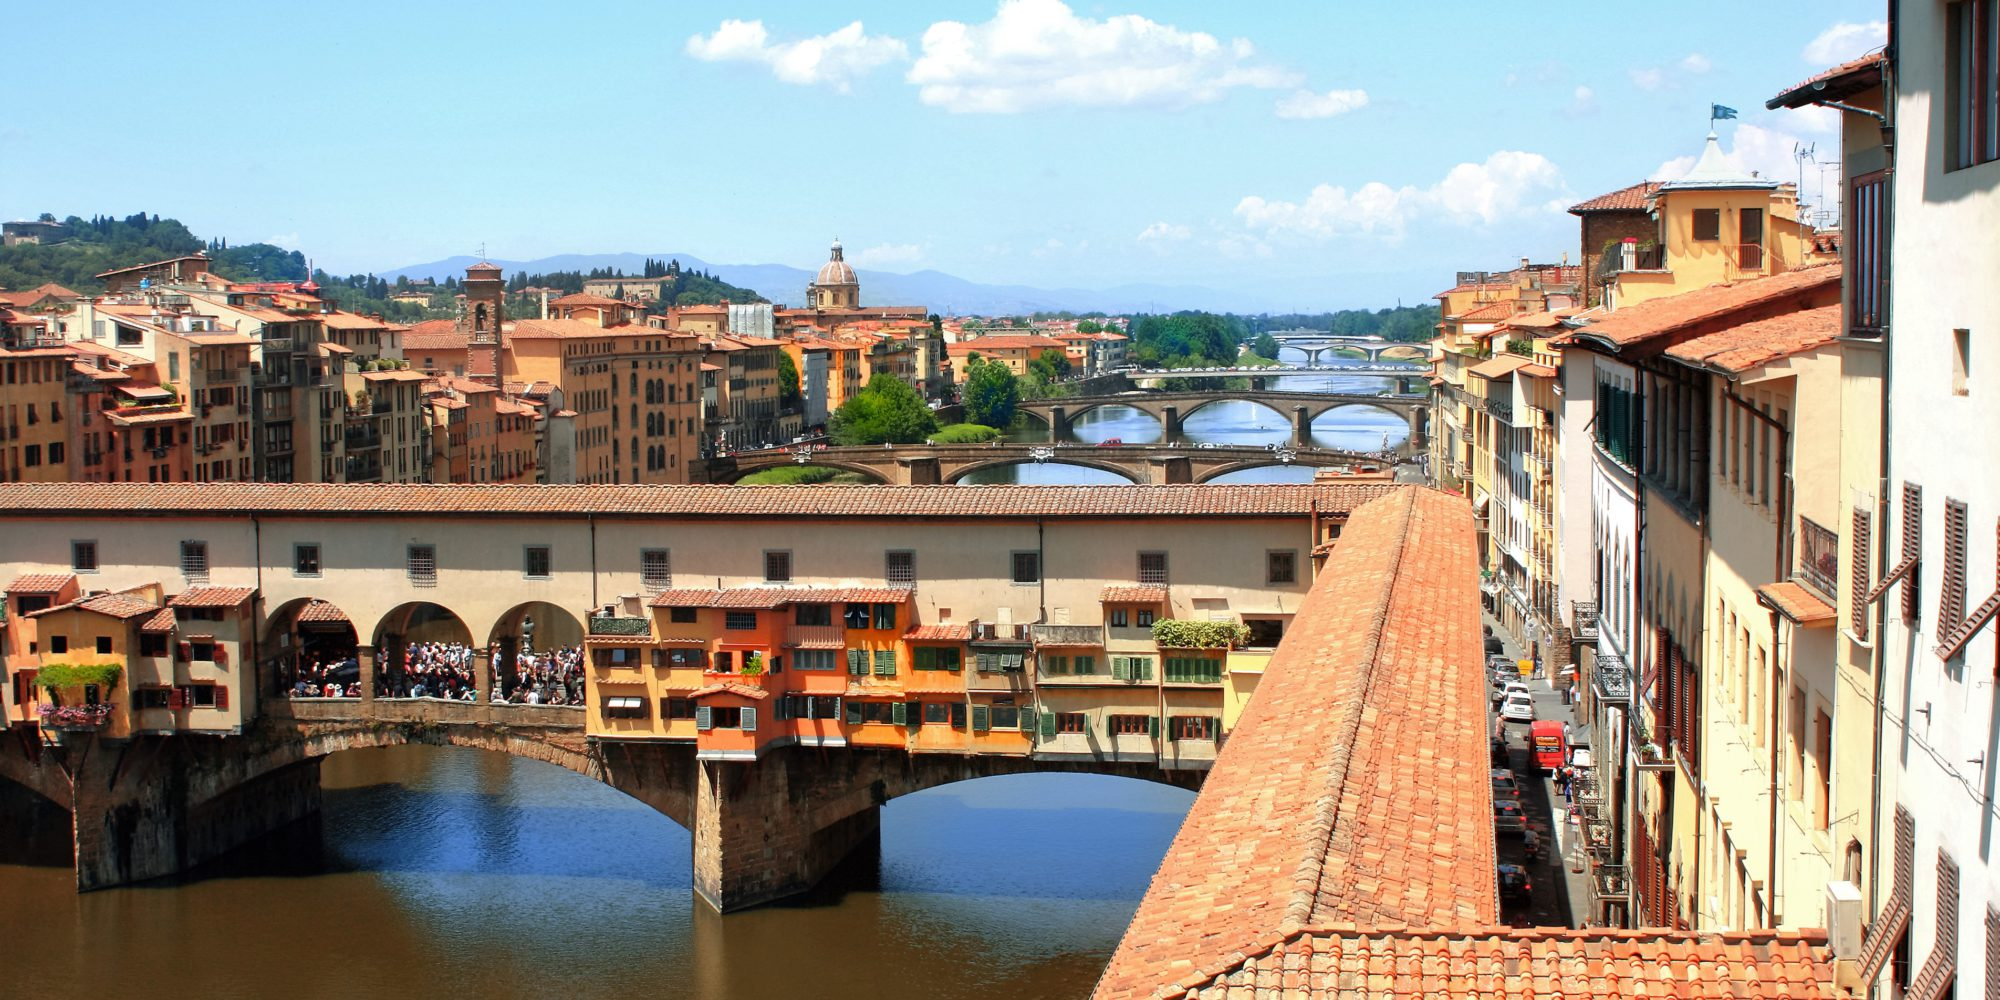 Vasari corridor is an exclusive visit, a real privilege to walk the same corridor the Medici's family used to move from Palazzo Vecchio and Pitti Palace